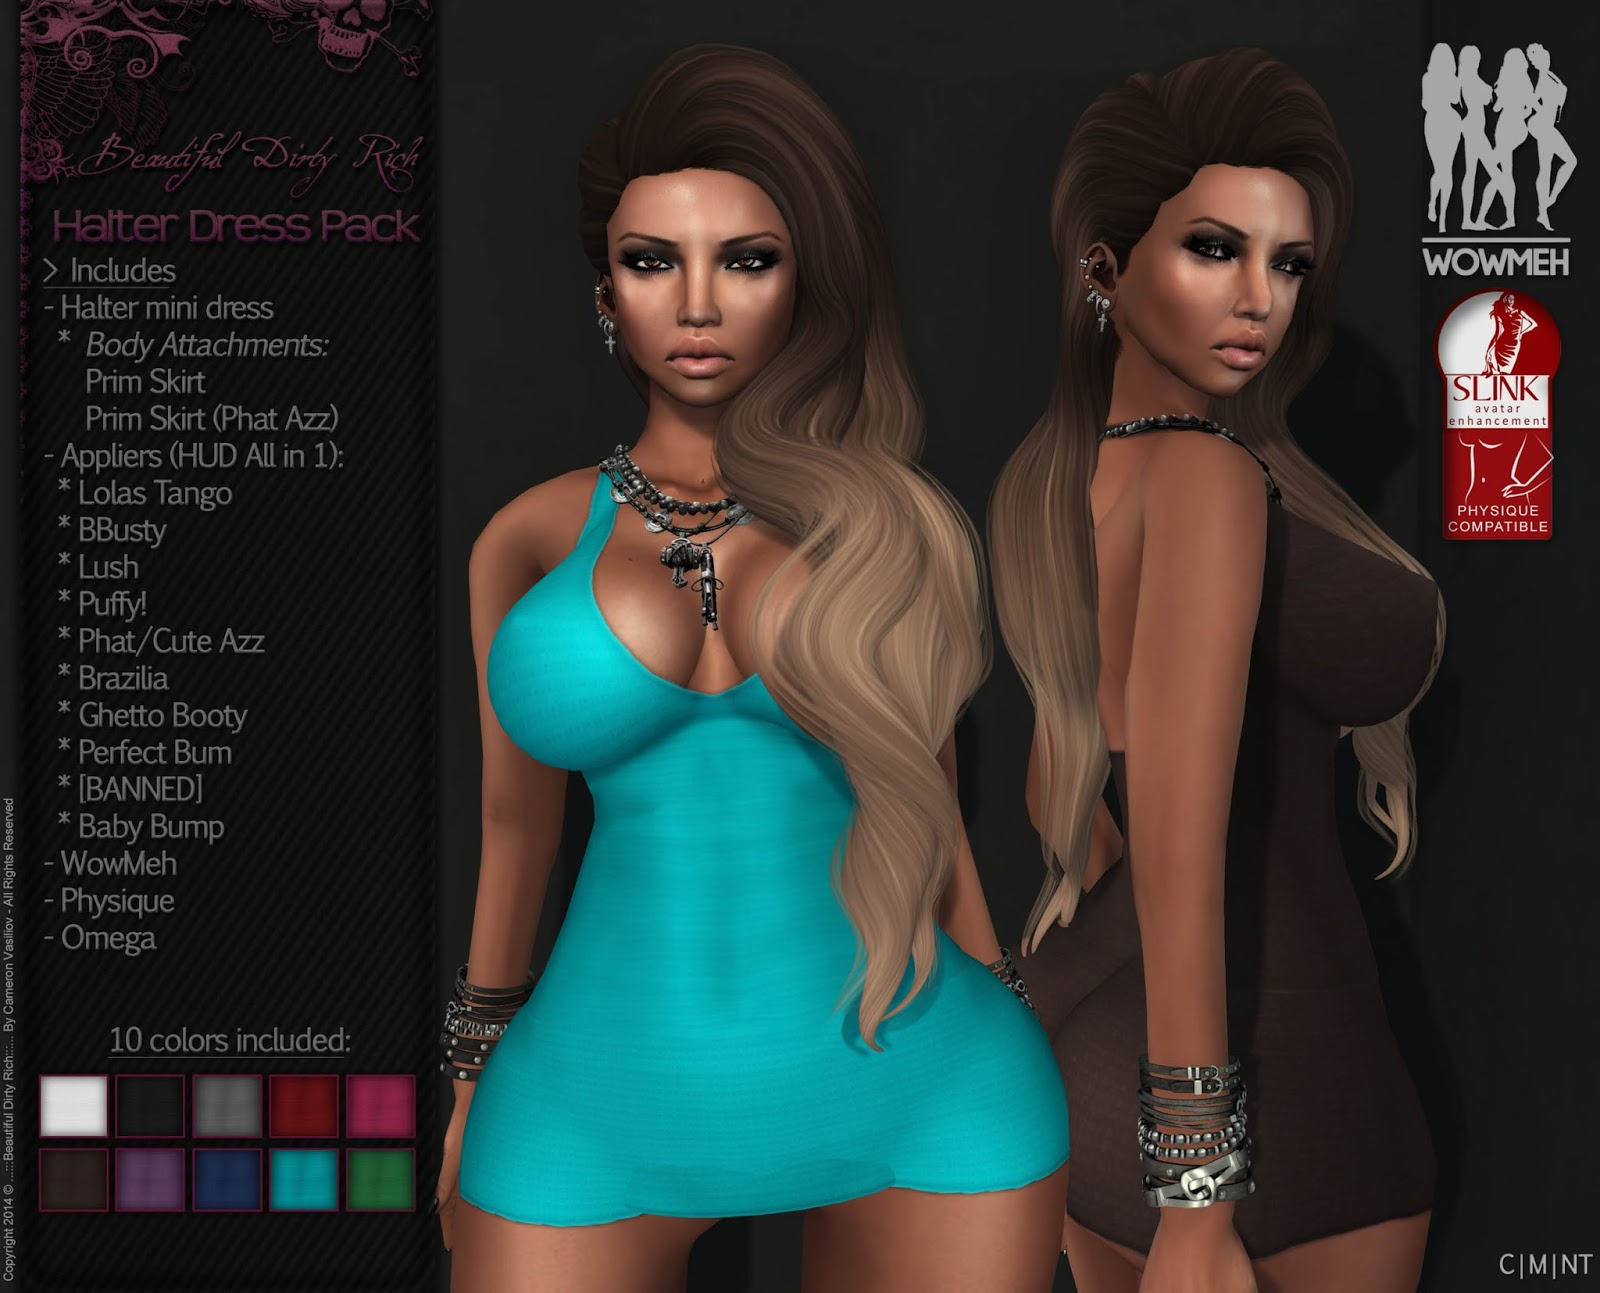 https://marketplace.secondlife.com/p/BDR-Halter-Dress-Pack-Update-WowMeh-Physique-and-Omega-appliers-added/5770523